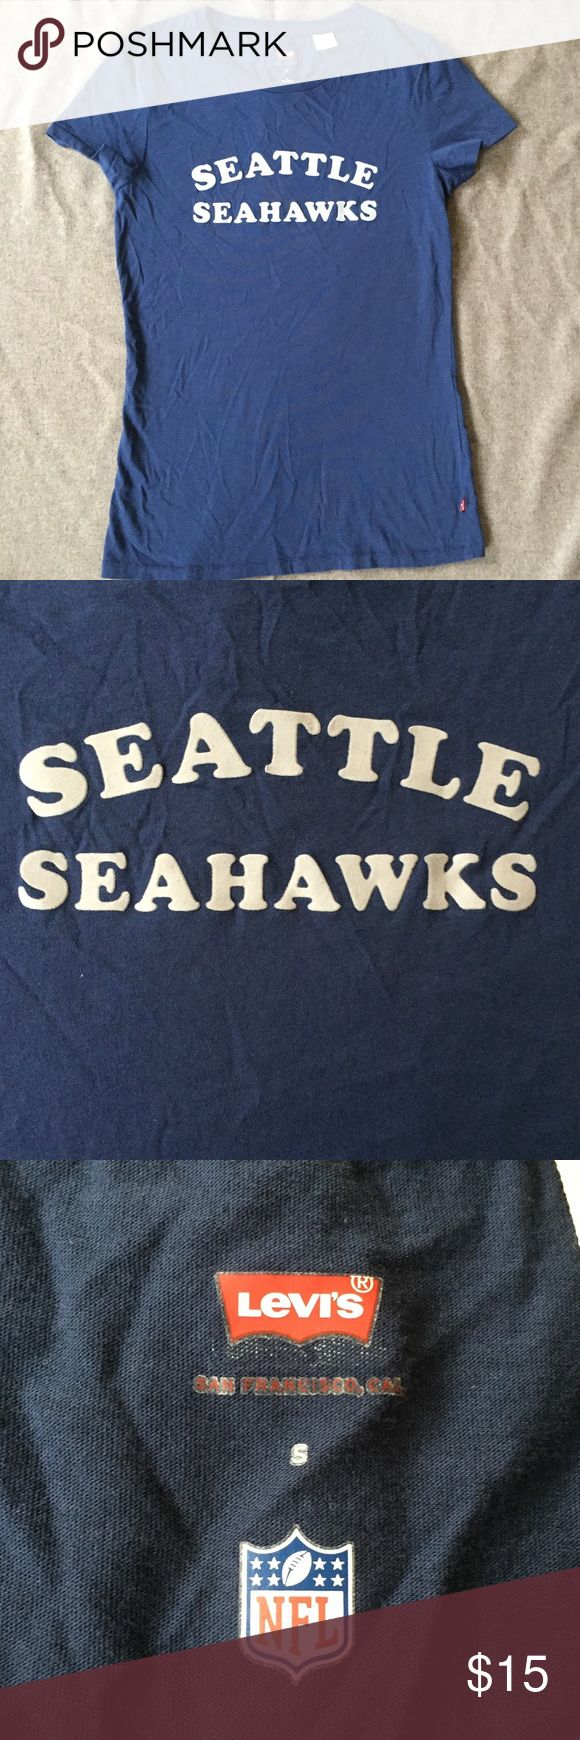 levi's nfl t shirt Seahawk nfl T shirt size small great condition Levi's Tops Tees - Short Sleeve